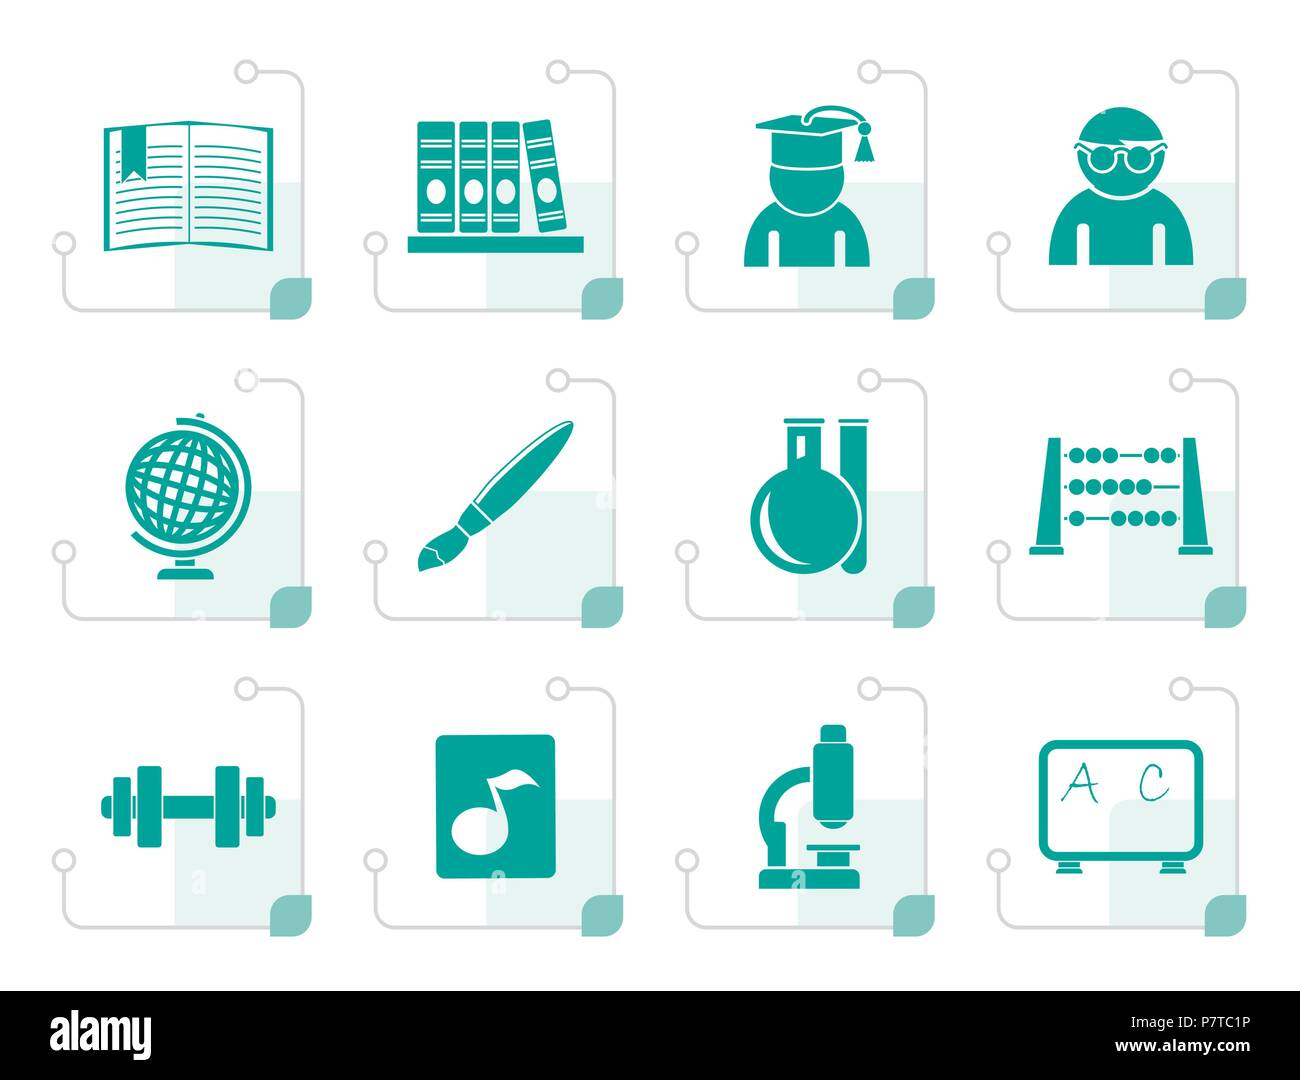 Stylized school and education icons - vector icon set - Stock Vector